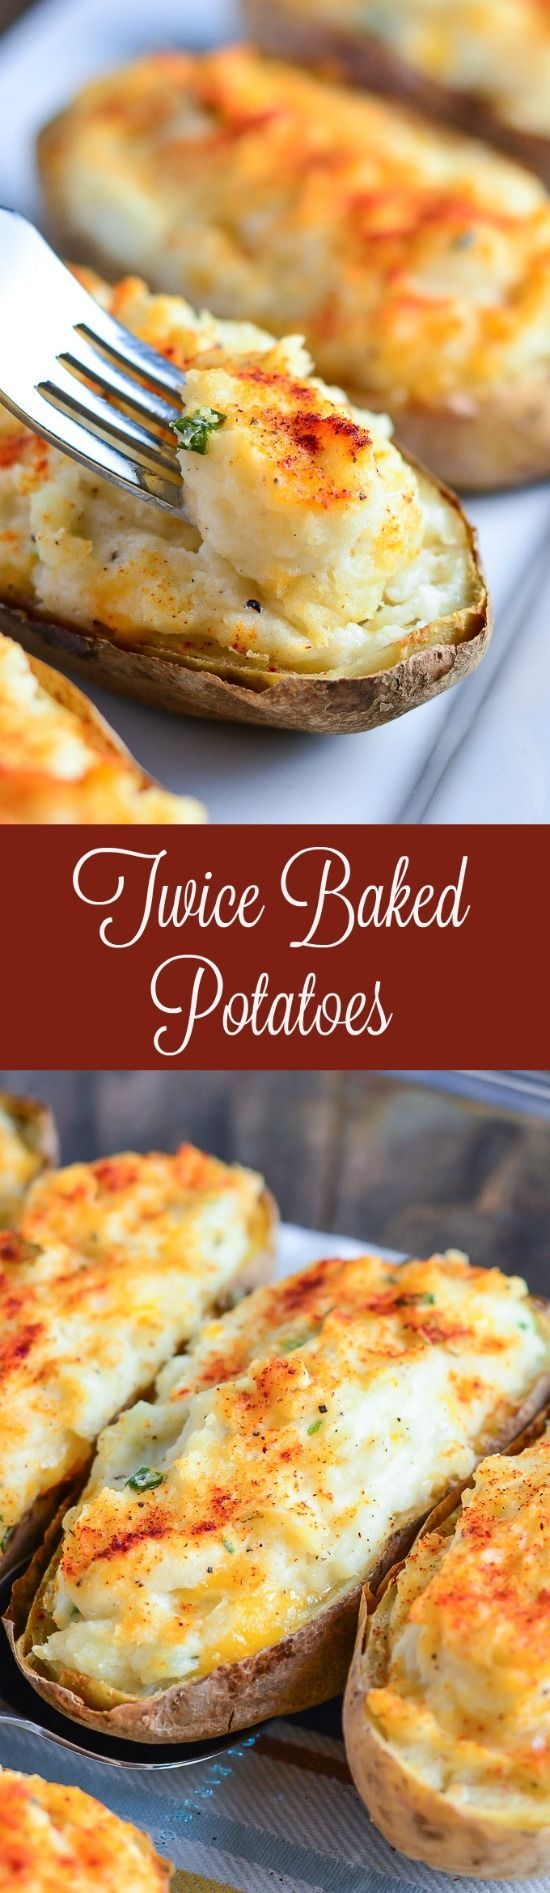 Make Twice Baked Potatoes for a perfectly portioned delicious side dish!                                                                                                                                                      More